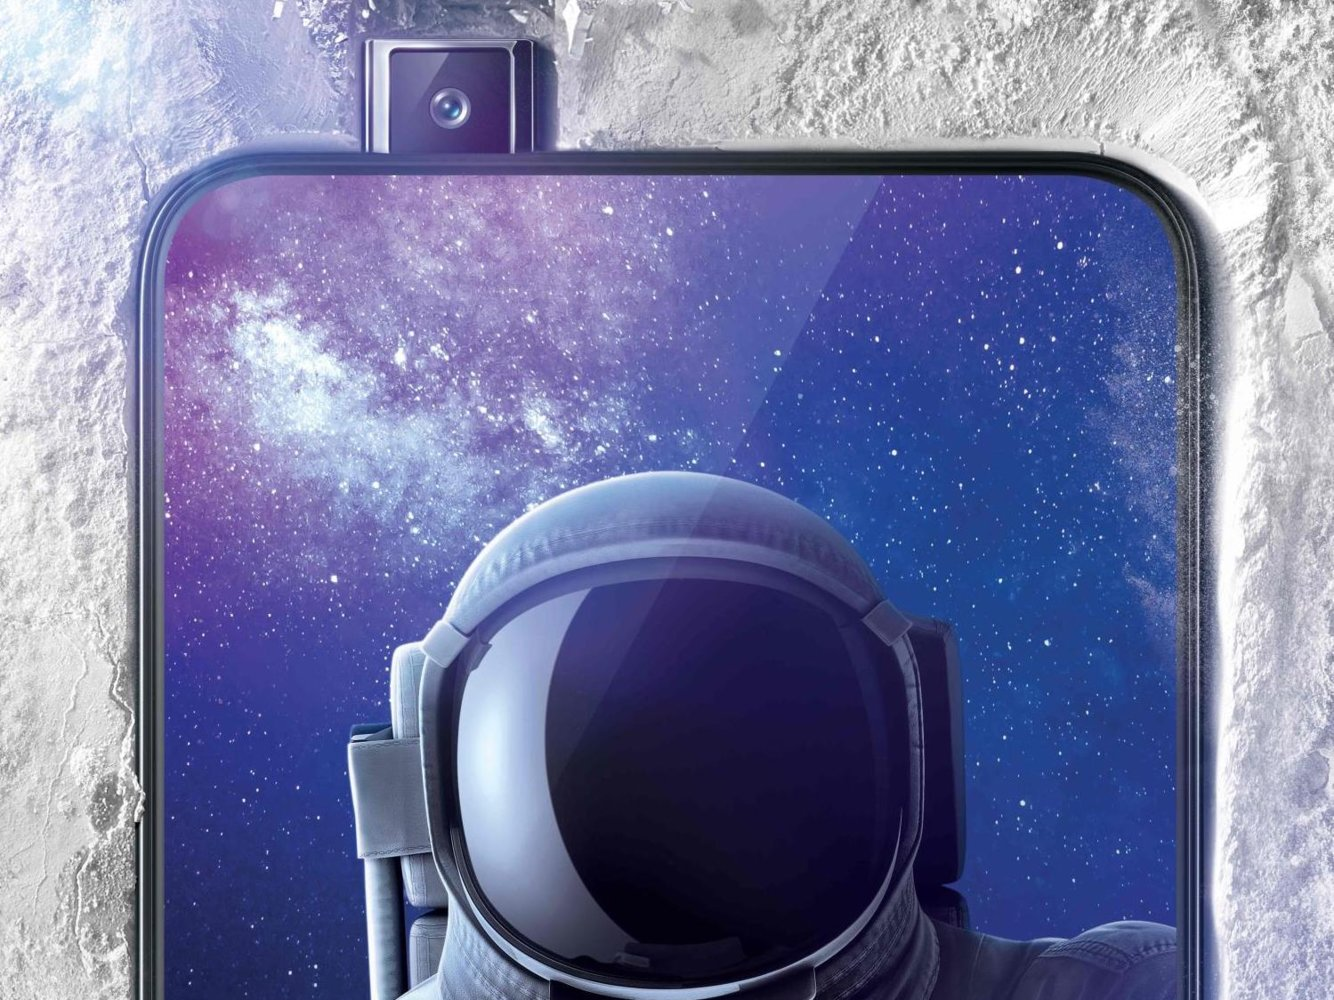 5 Android phones with futuristic edge-to-edge displays that nobody would ever mistake for an iPhone X